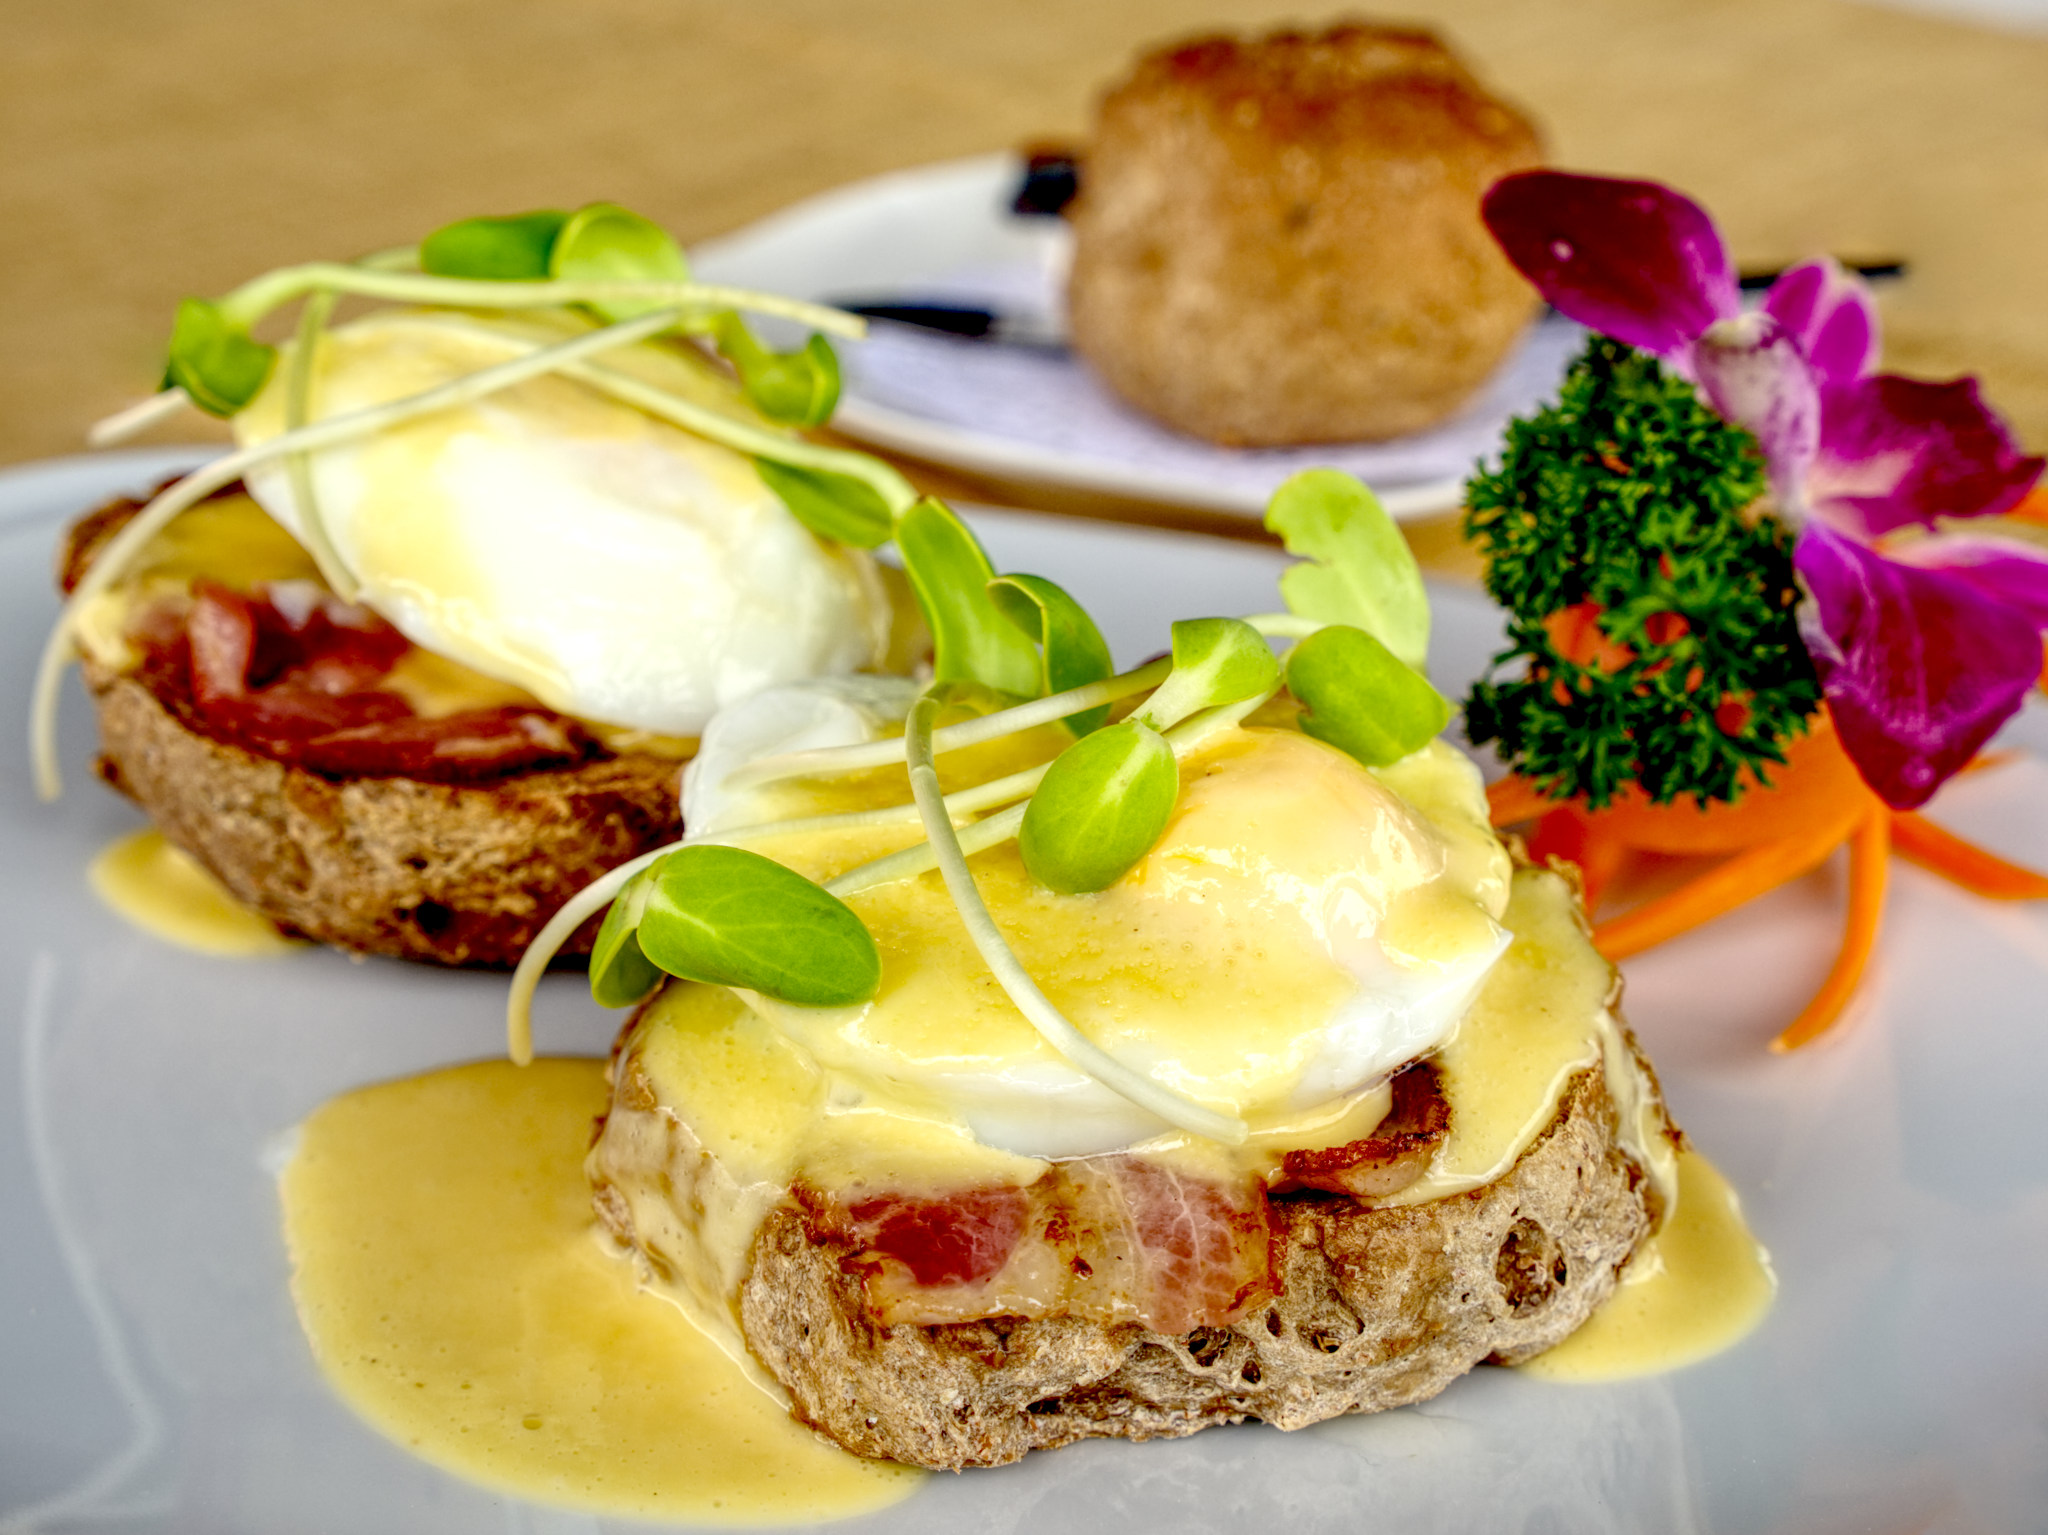 photograph of eggs benedict